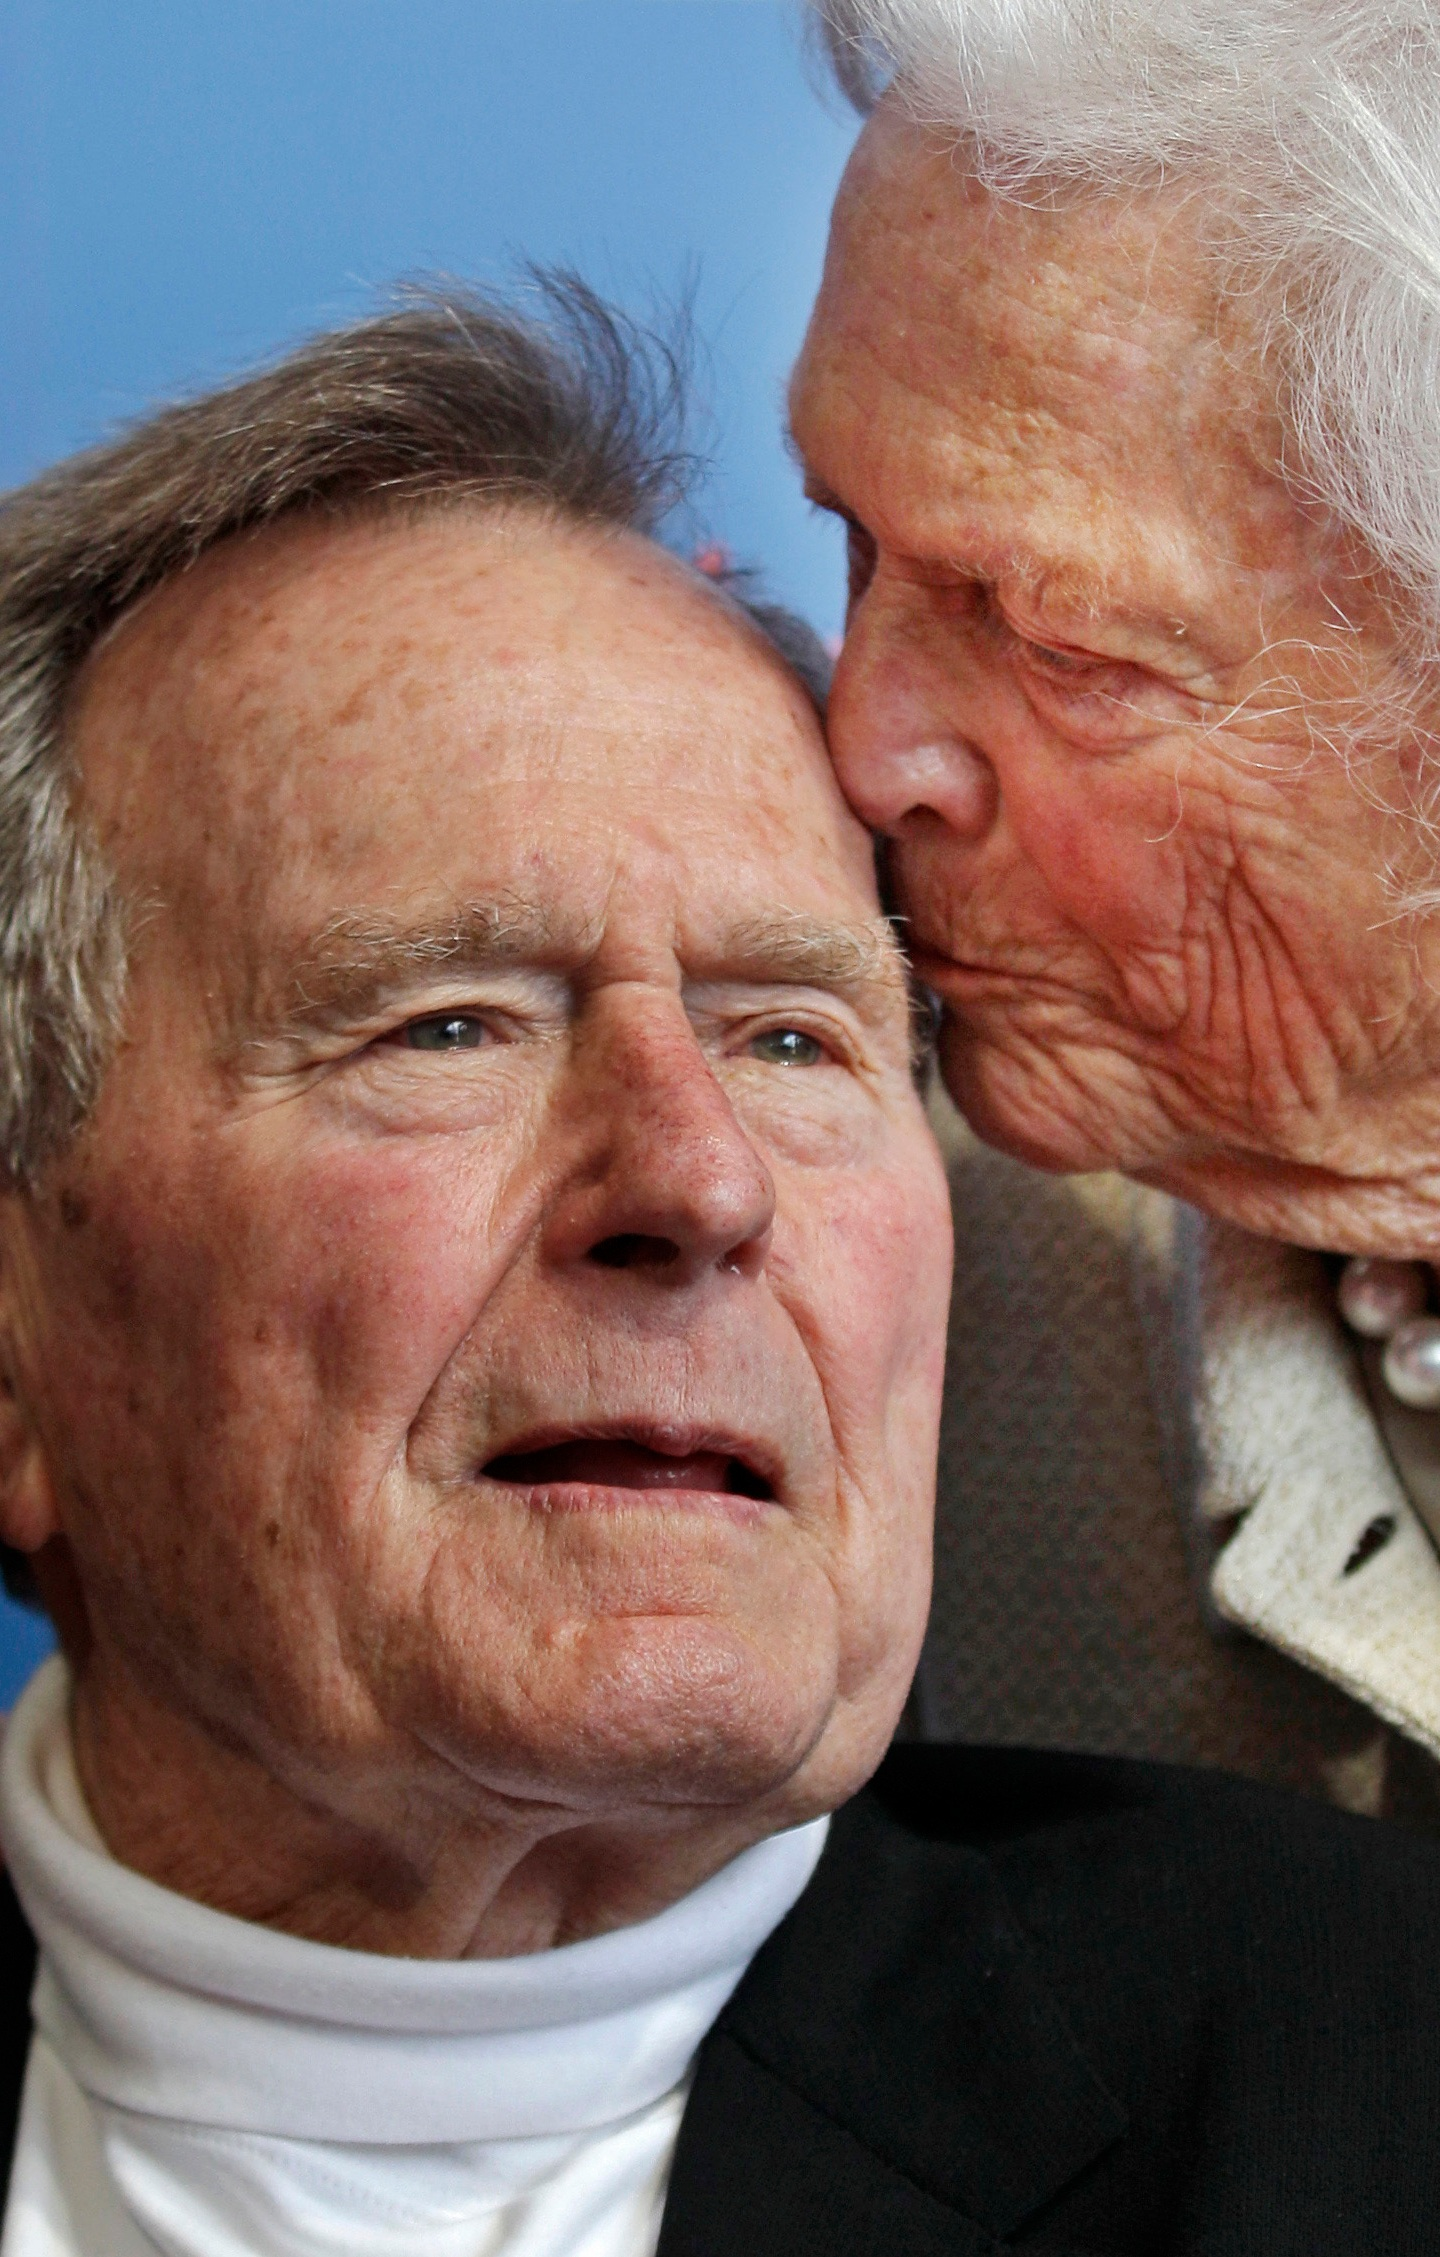 Obit_George_HW_Bush_47691-159532.jpg80601151